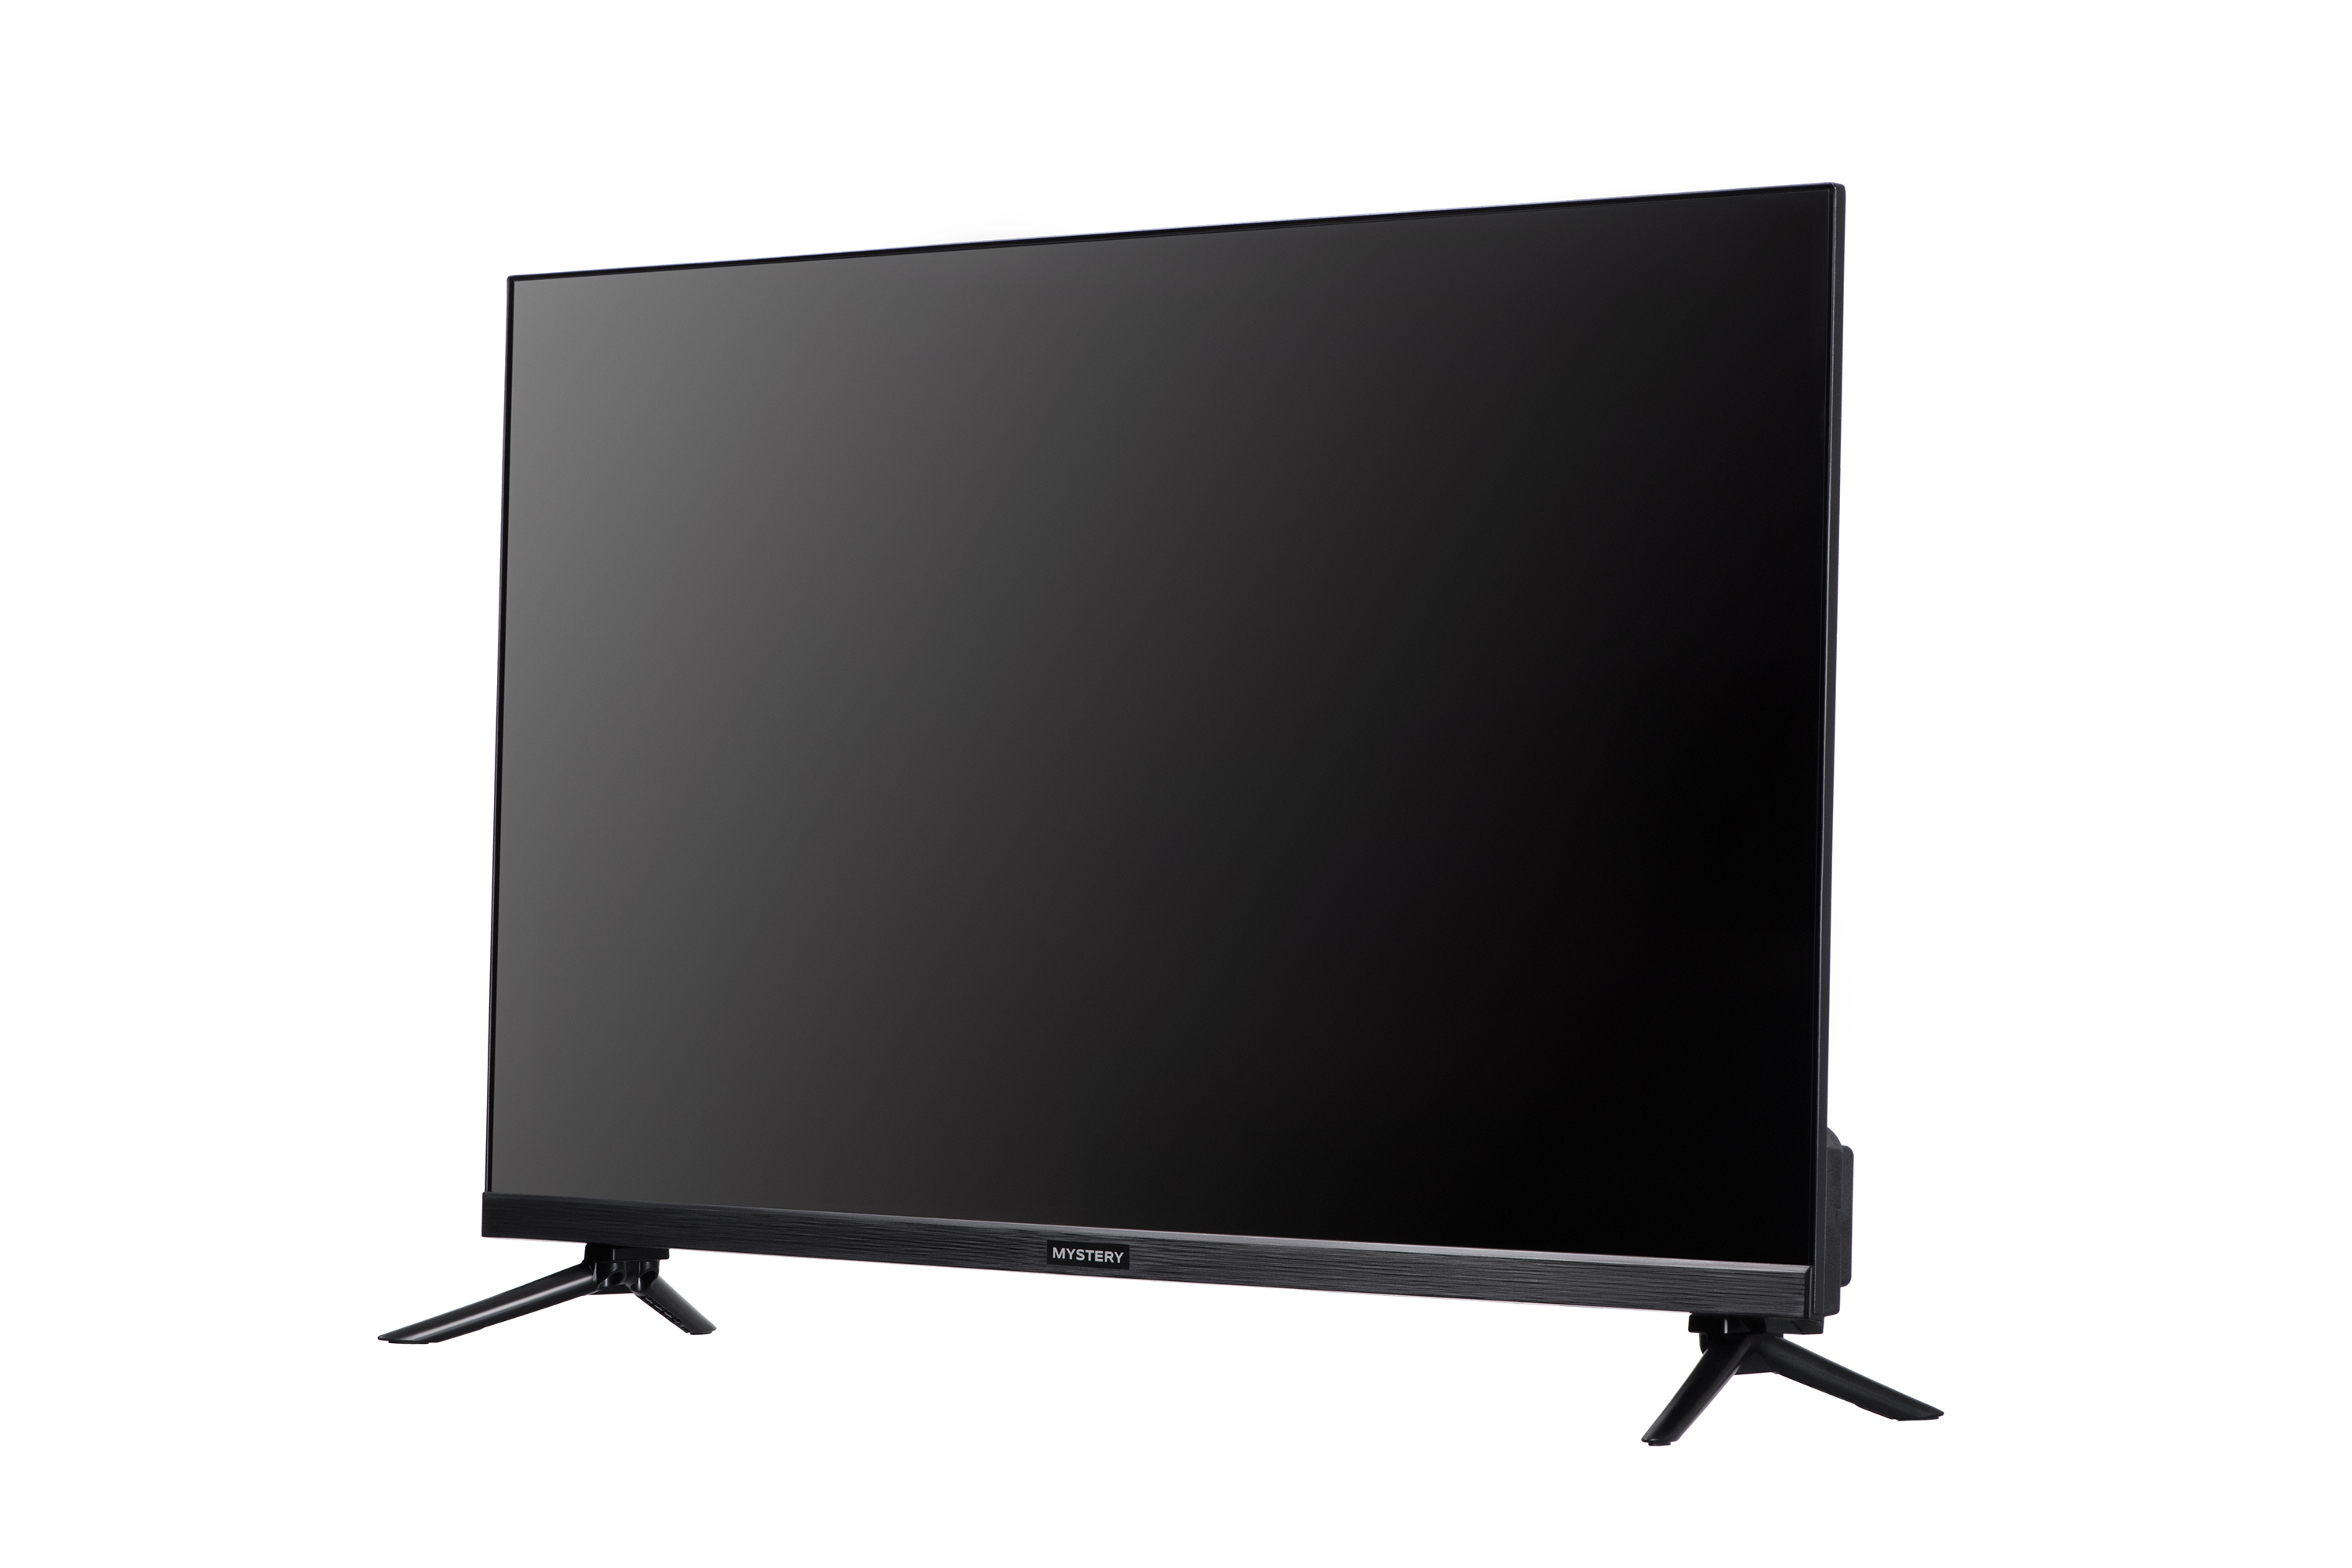 Frameless Mystery MTV-3230HT2 TV